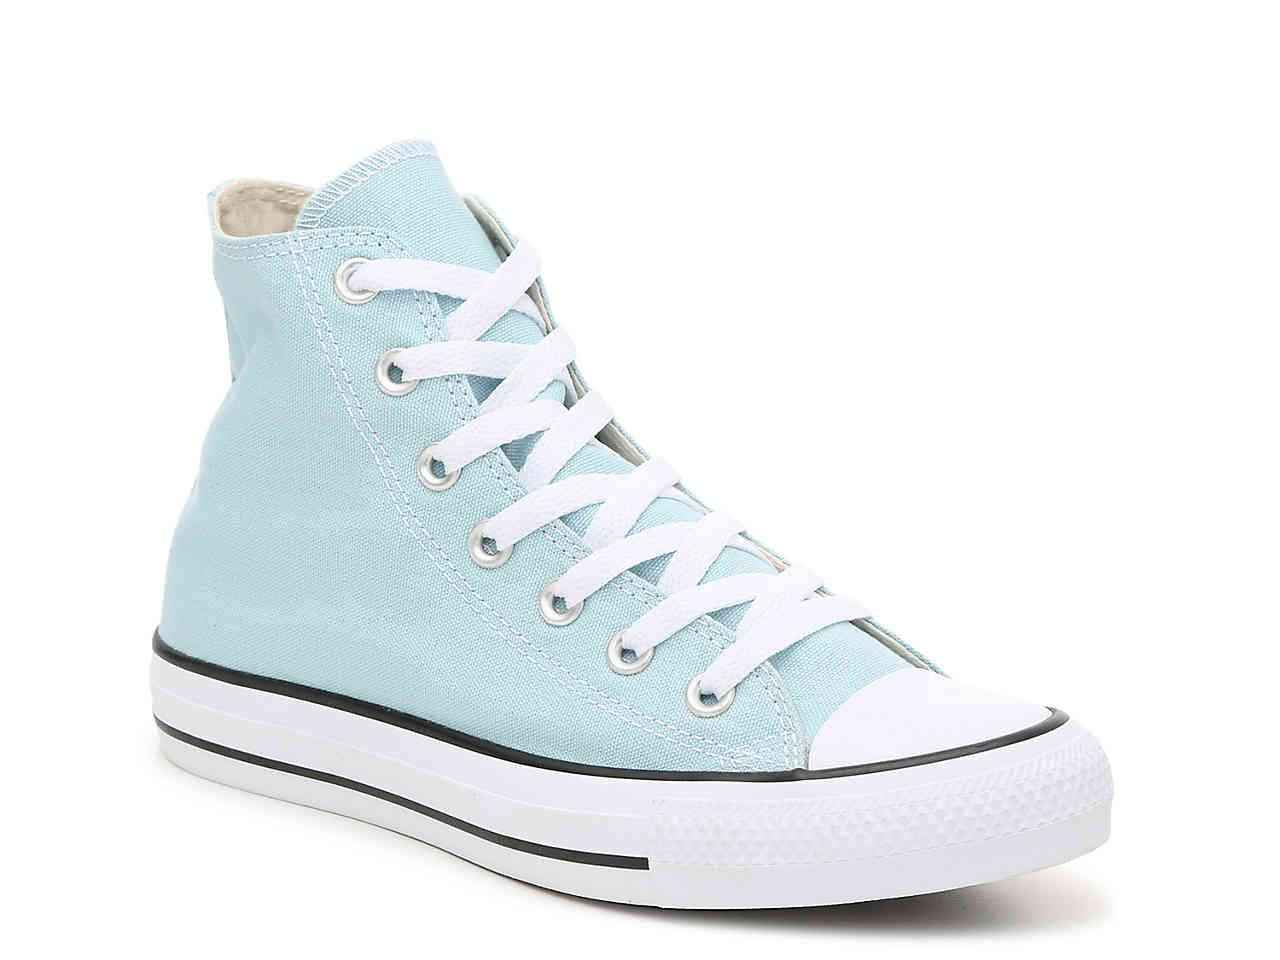 Lyst - Converse Chuck Taylor All Star Hi High-top Sneaker in Blue 7ad021848